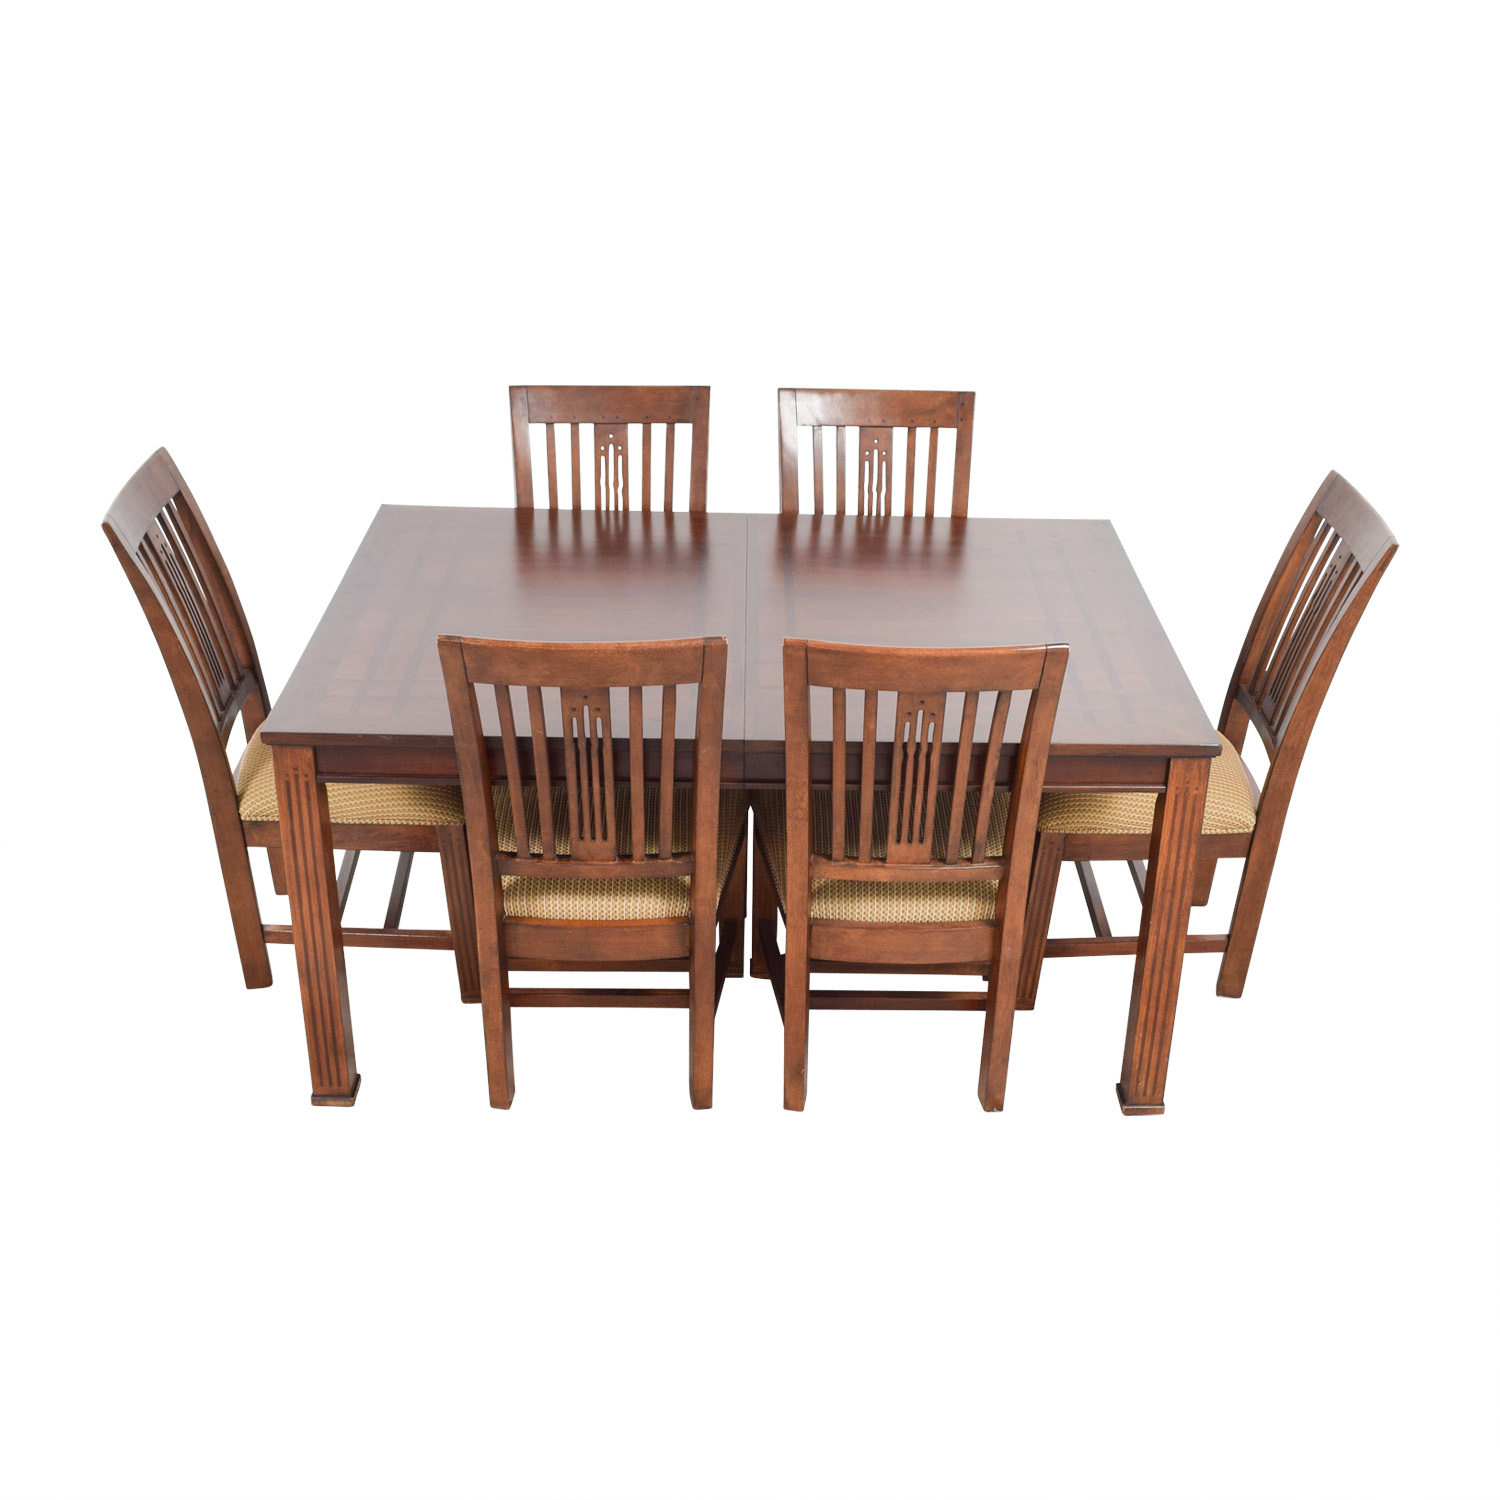 buy Macys Craft Mission Shaker Table and Chairs Macys Dining Sets